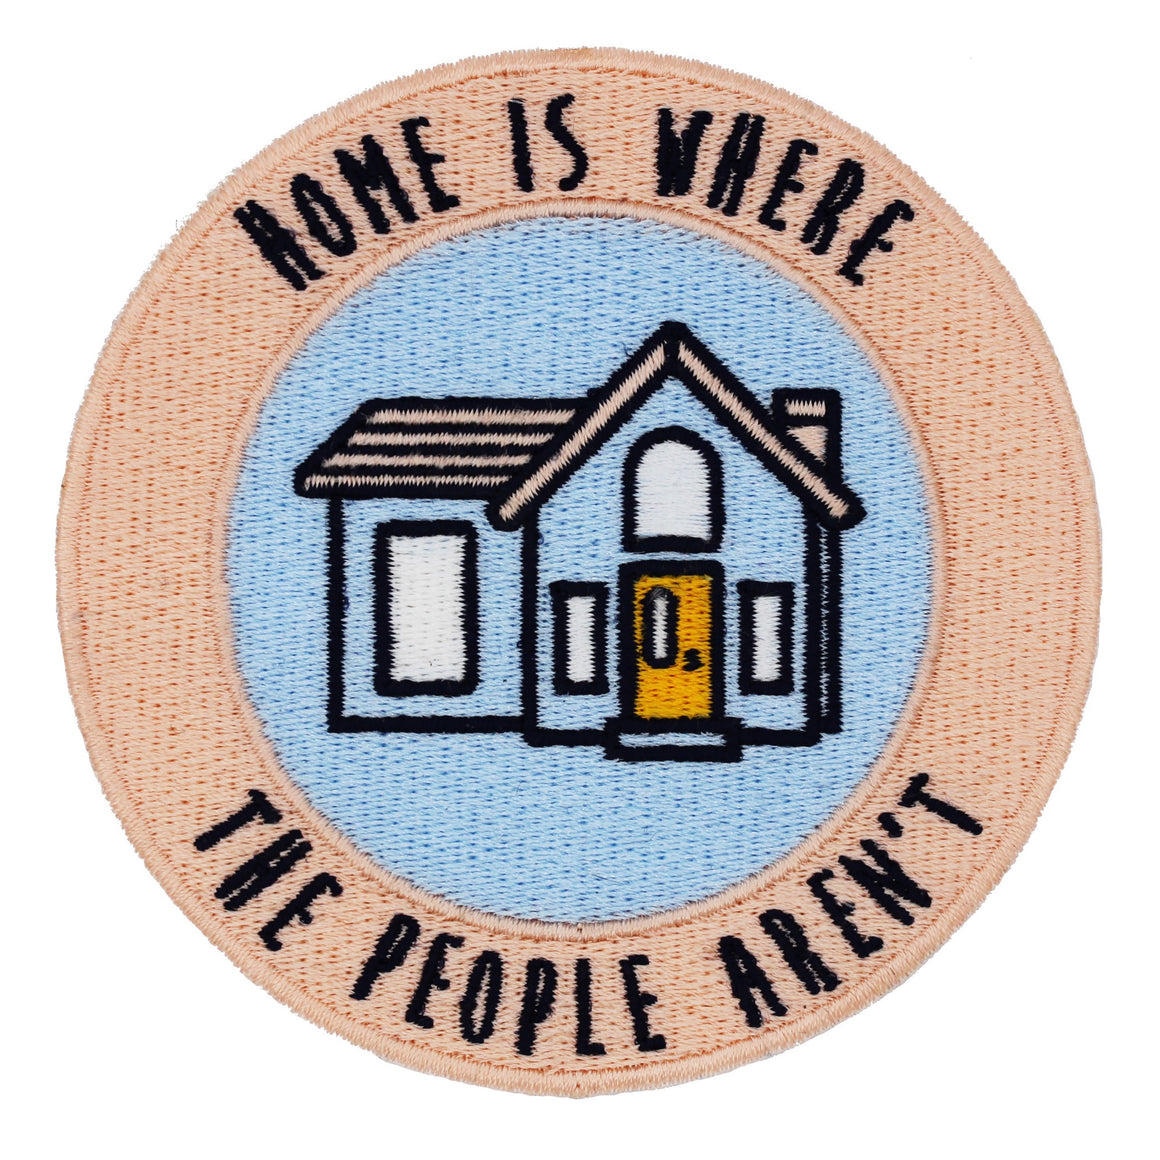 Home Is Where The People Aren't